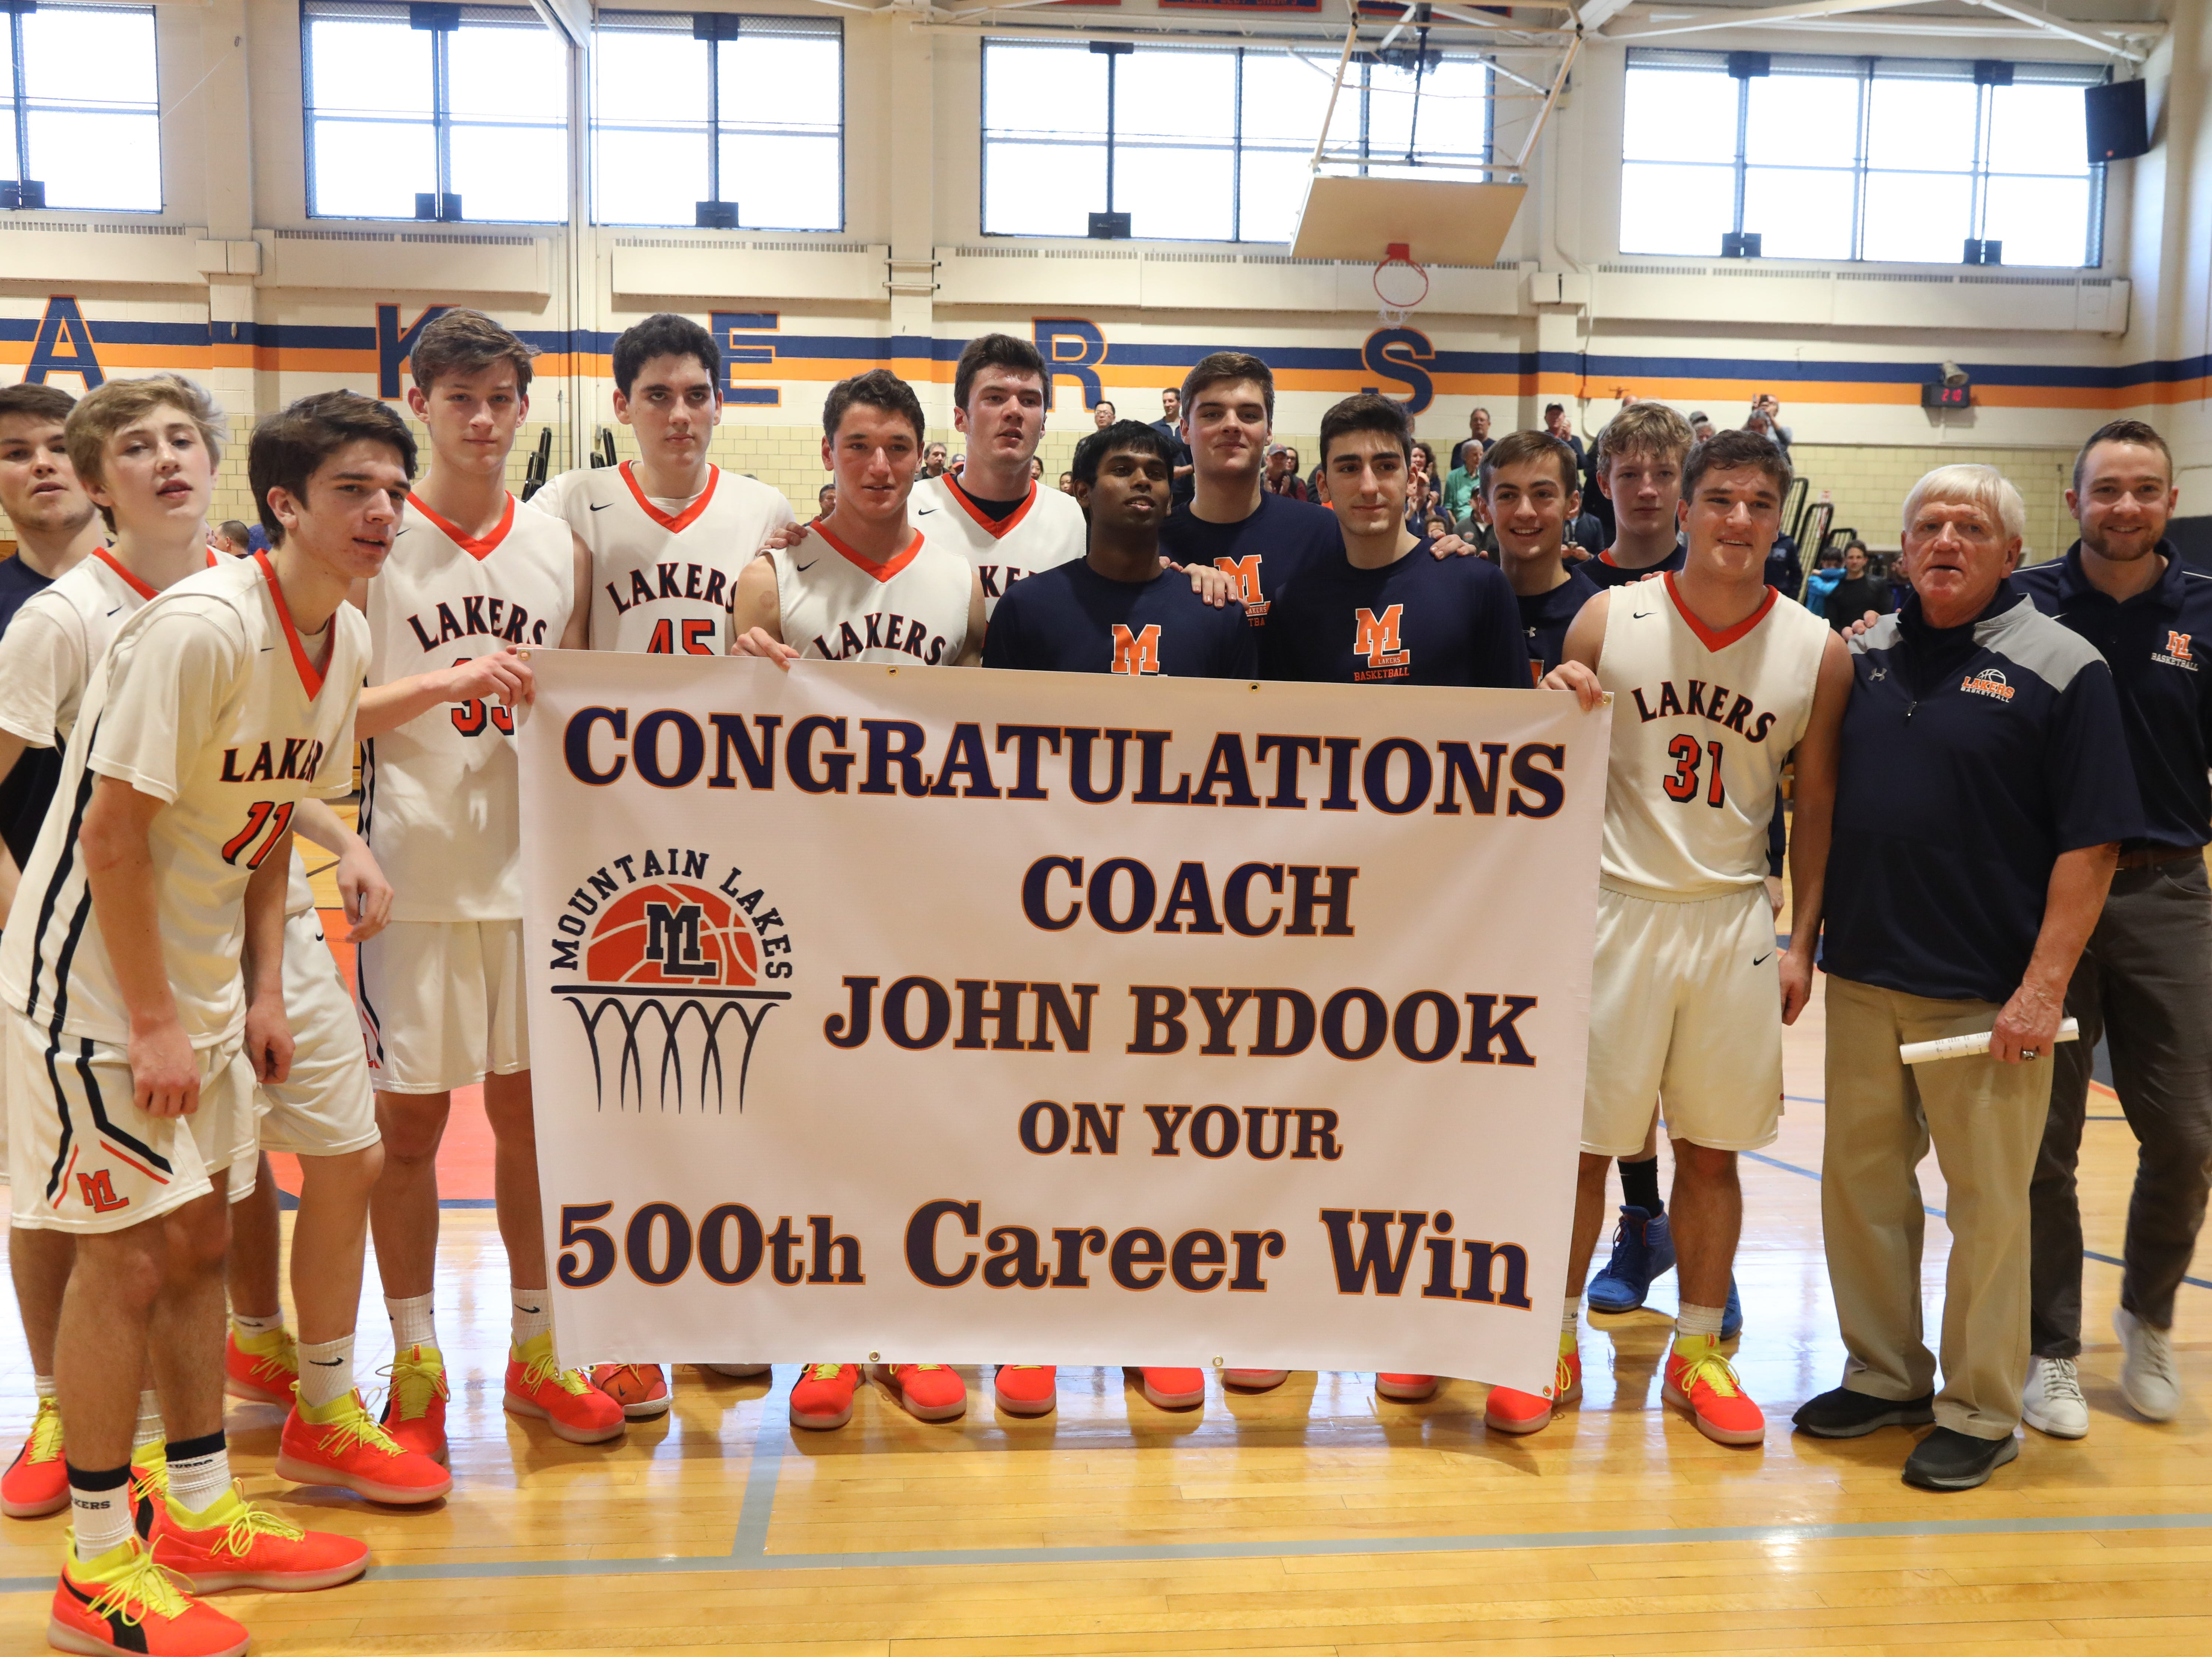 Mt. Lakes head coach John ByDook is honored at the end of the game after he recorded his 500th career win.